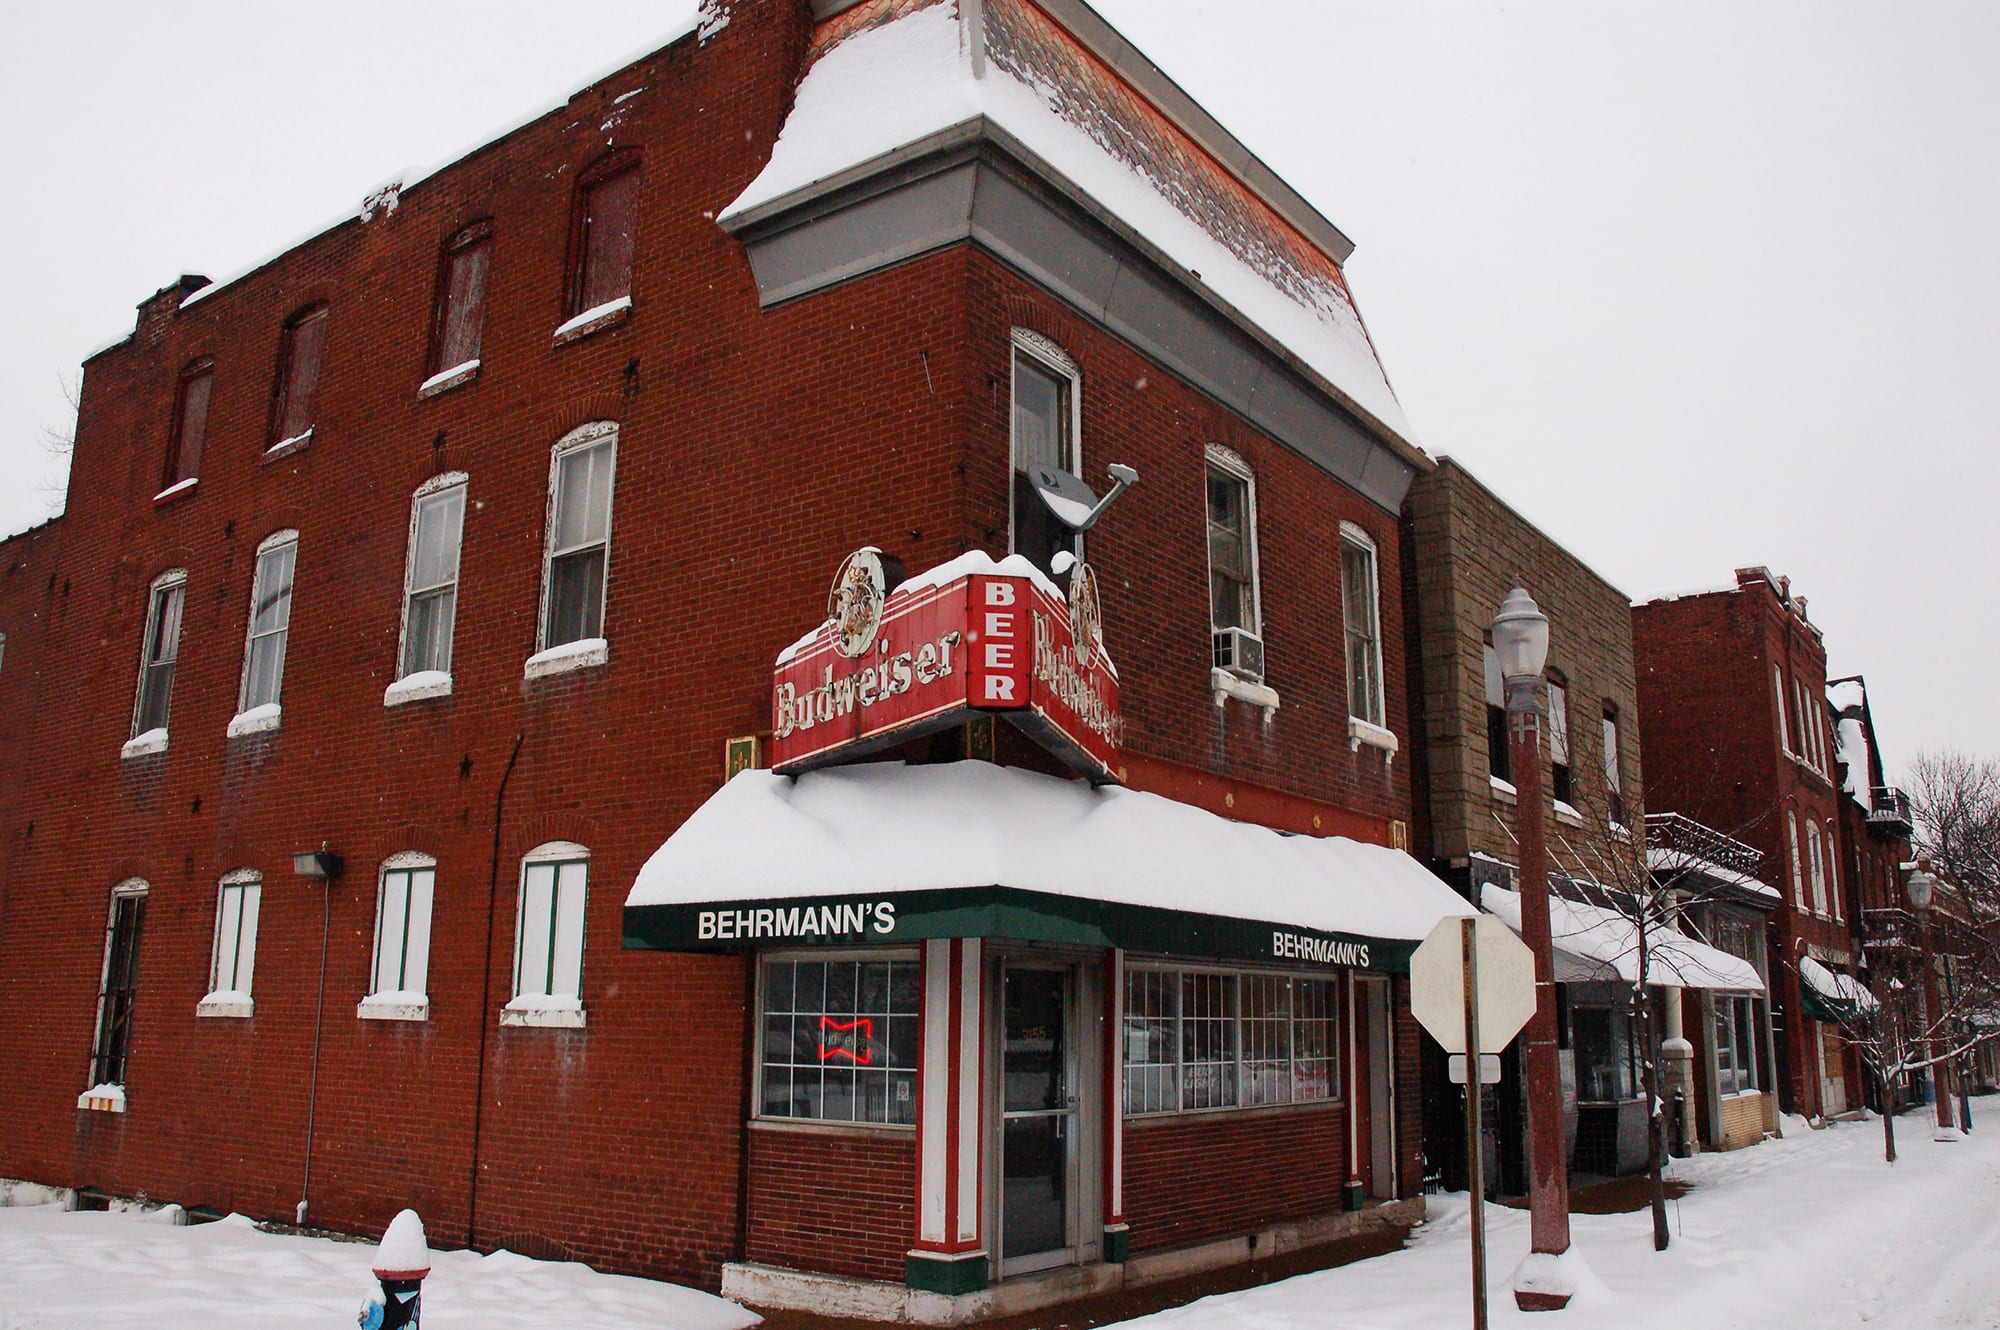 Behrmann's Tavern in the snow.